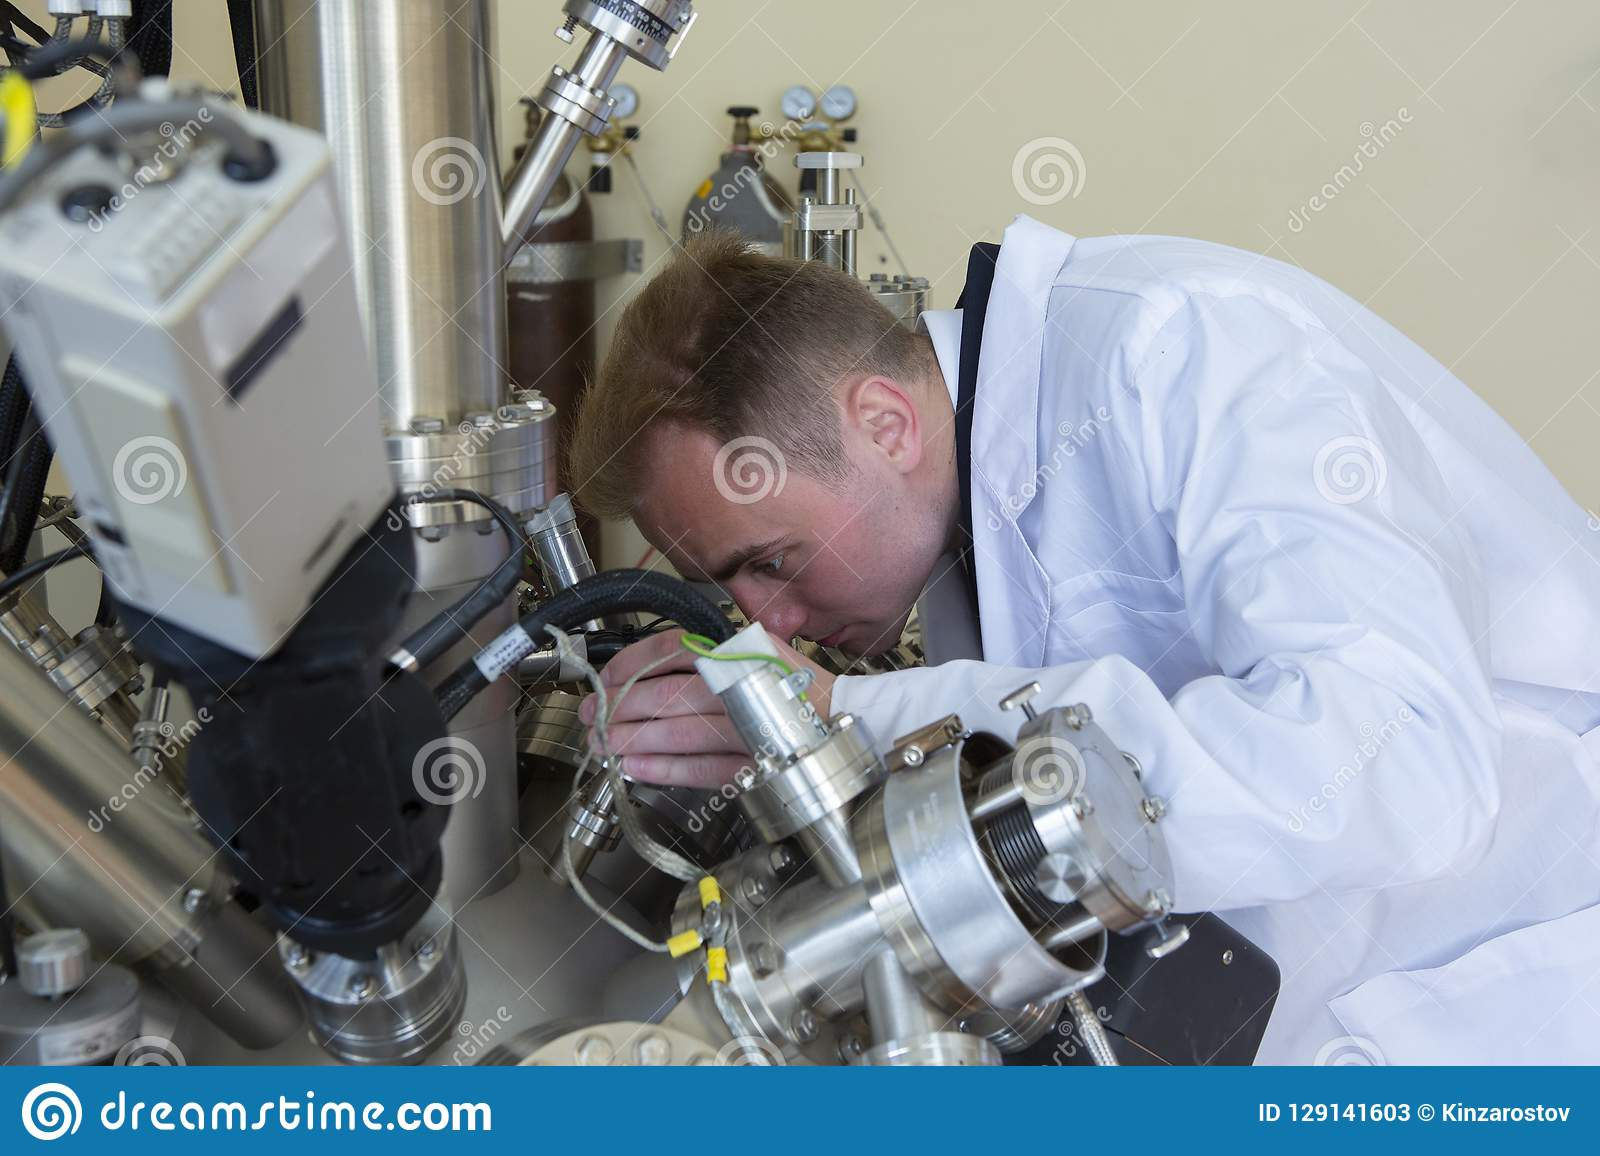 Laboratory equipment for scientific experiments. Abstract industrial background.